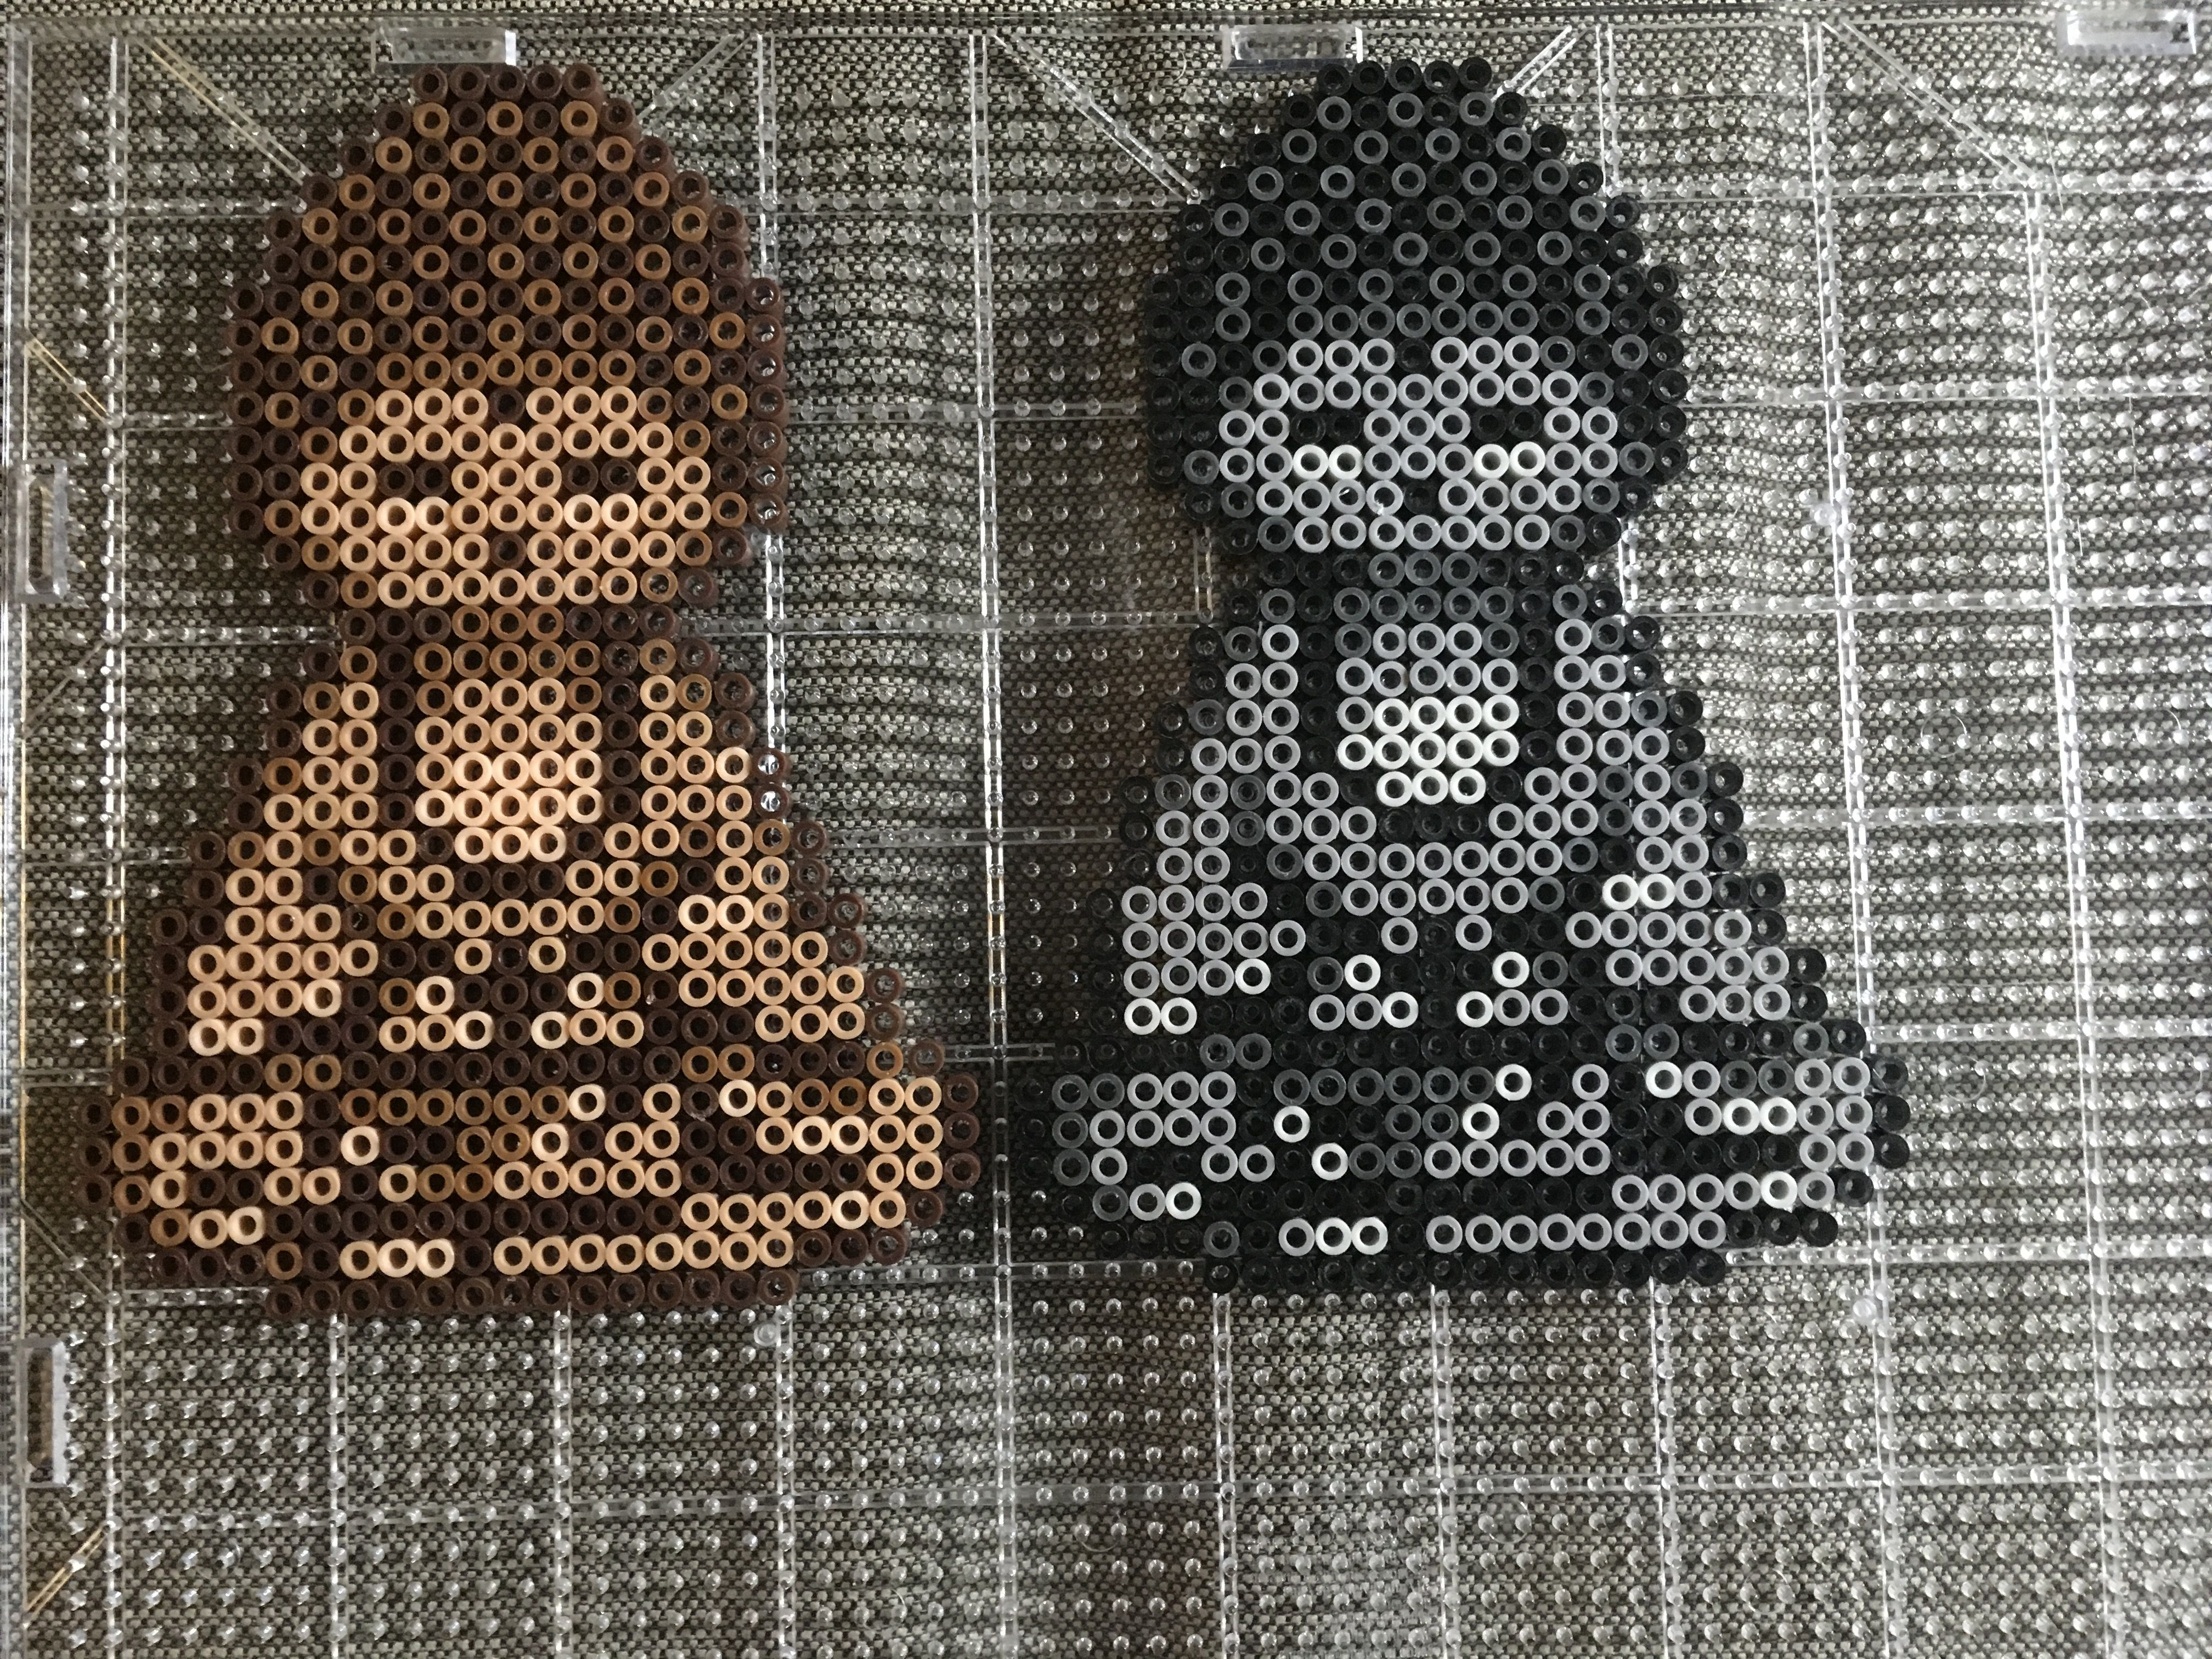 Buddha Made W Perler Beads Not My Original Design But The Stone Color Scheme Is Keywords A Perle A Repasser Modeles Perle A Repasser Noel Perles A Repasser